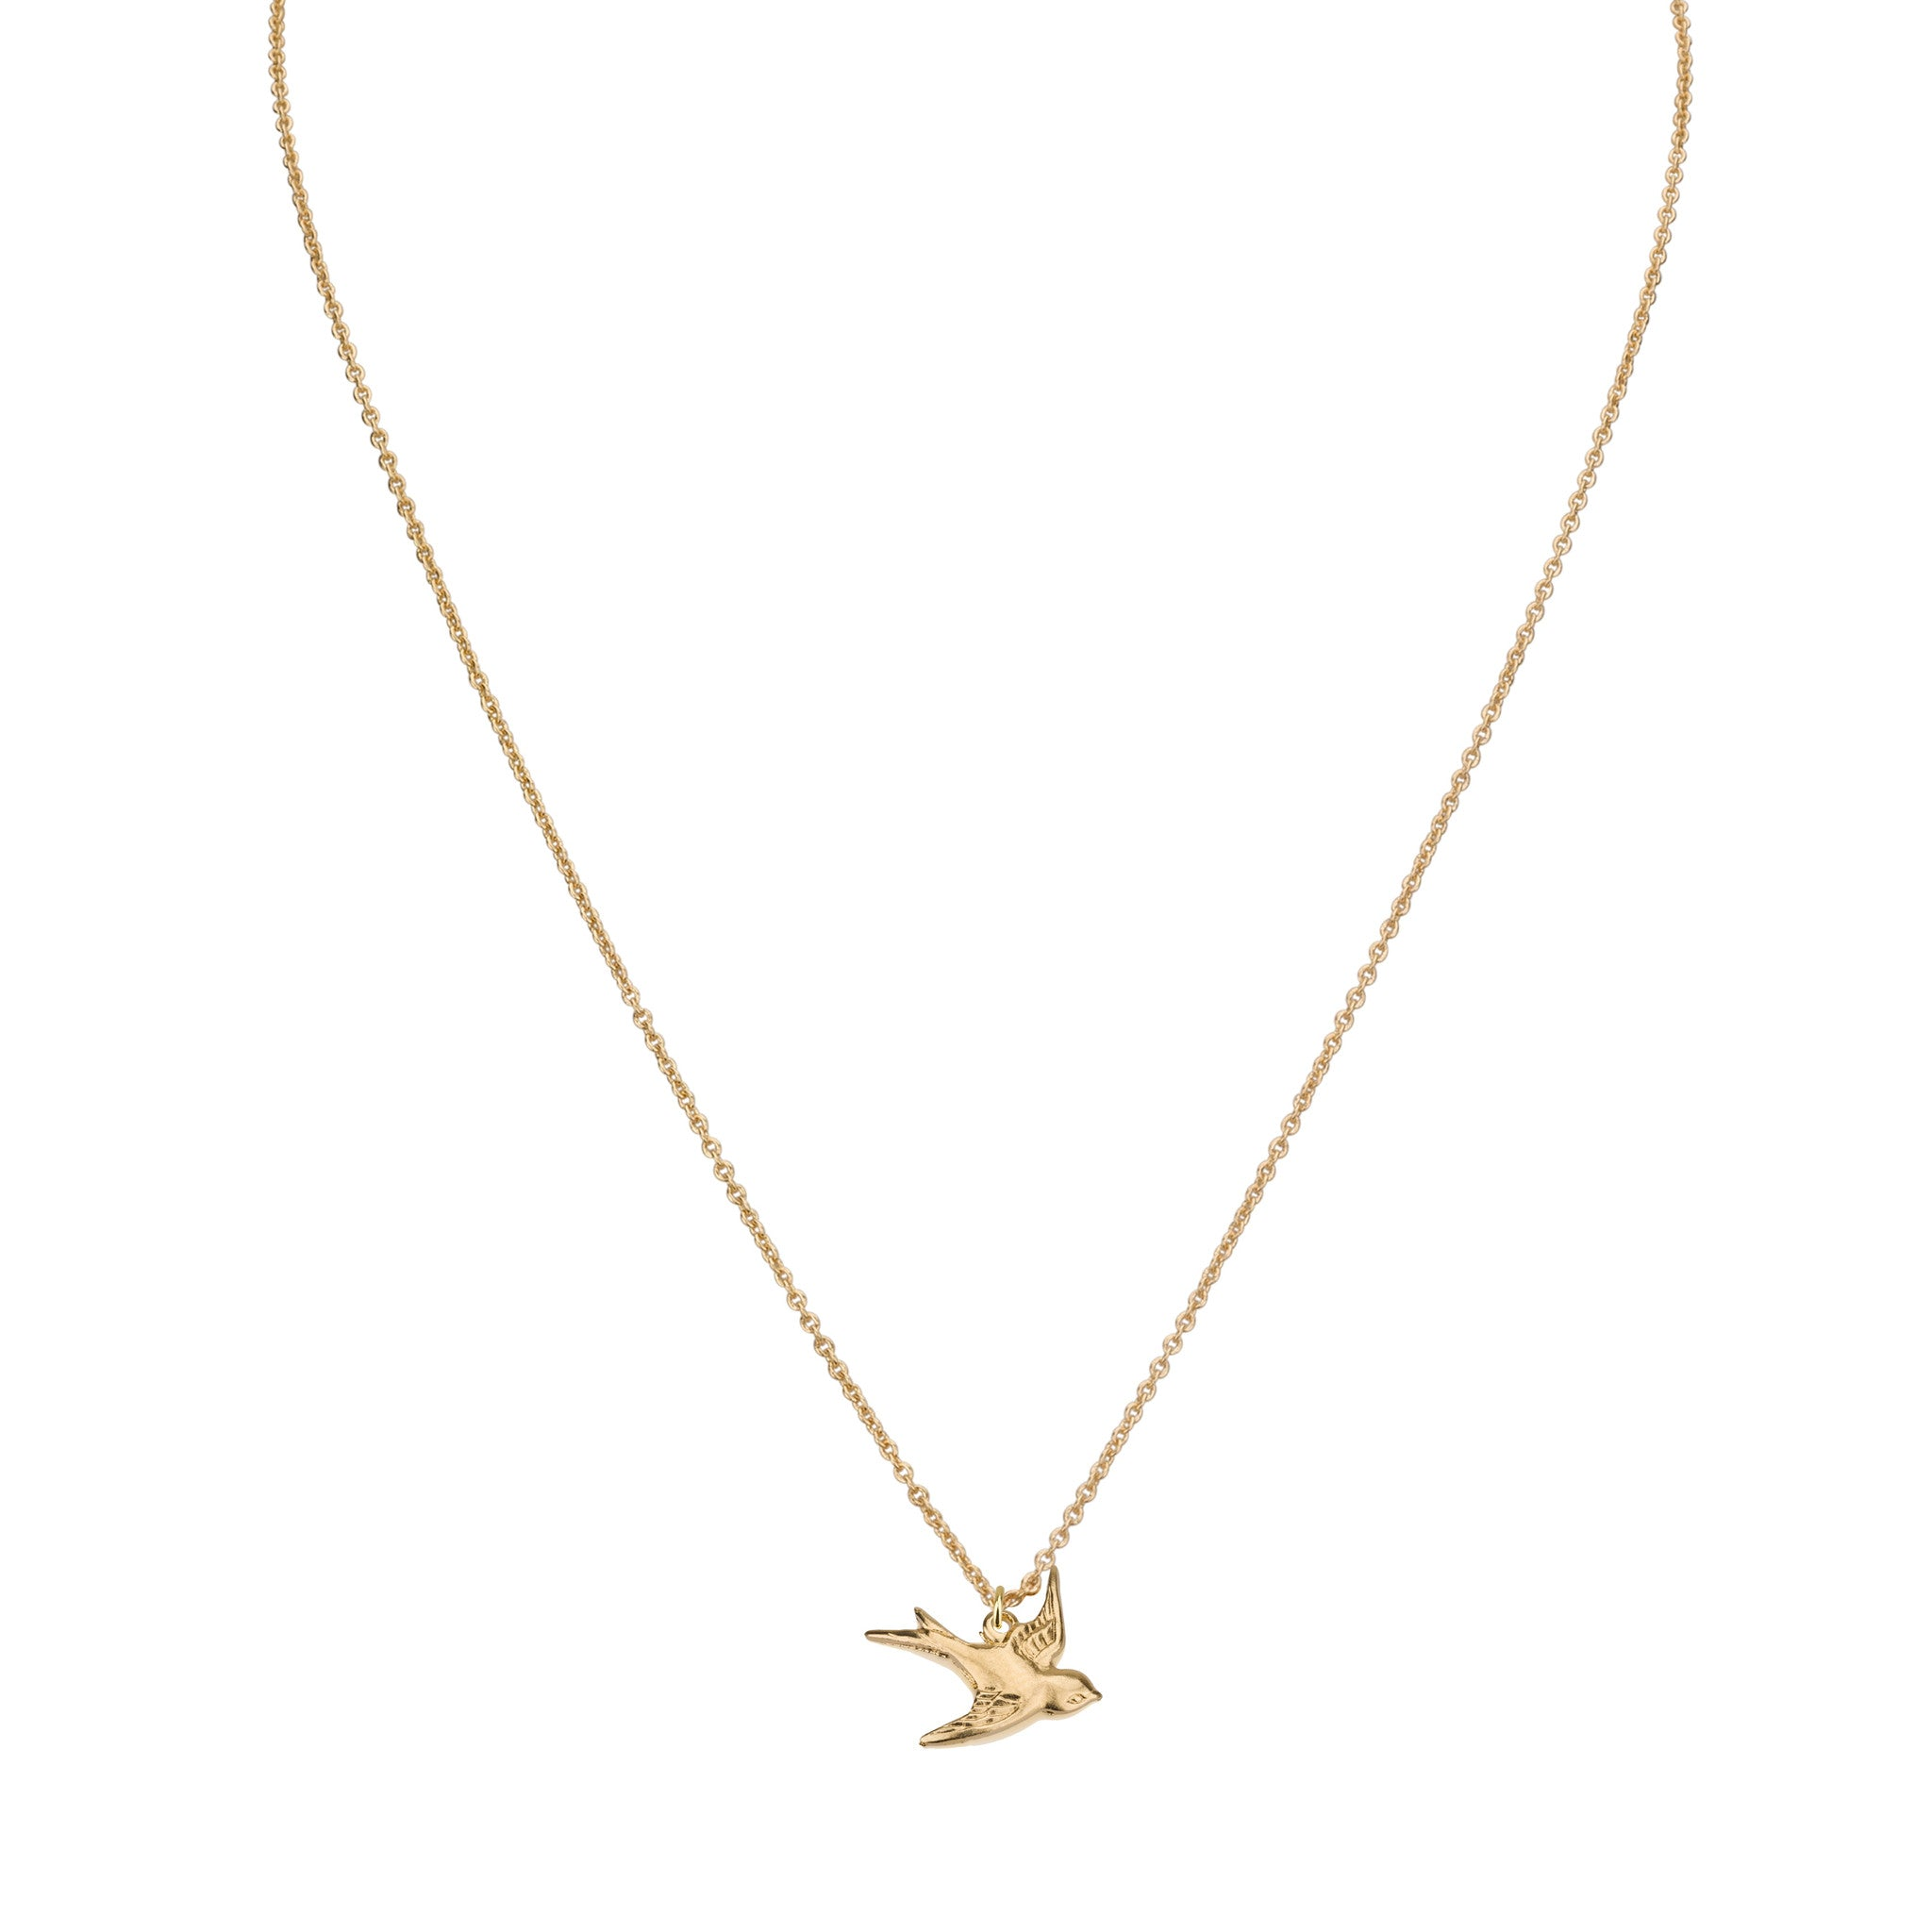 Necklaces - Bird & Helen Chain Necklace